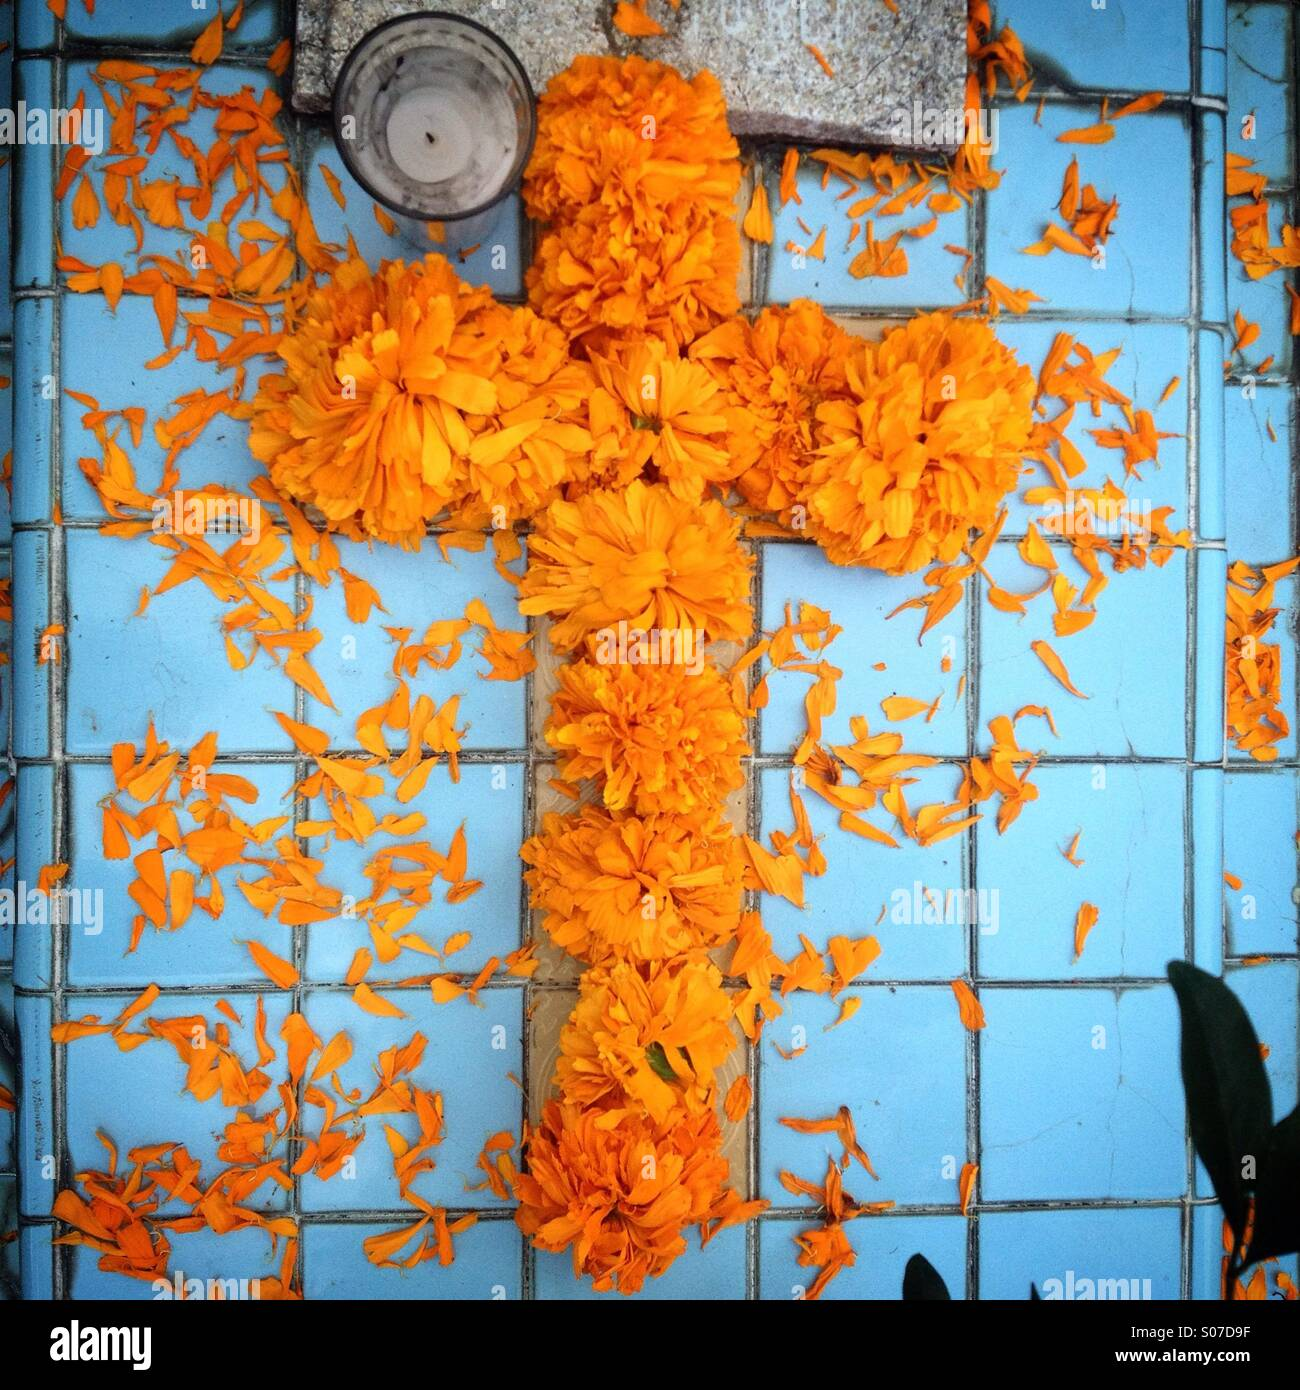 Marigold cross decorating a tomb made with sky blue ceramic tiles marigold cross decorating a tomb made with sky blue ceramic tiles during day of the dead celebrations in san gregorio atlapulco cemetery in xochimilco dailygadgetfo Choice Image